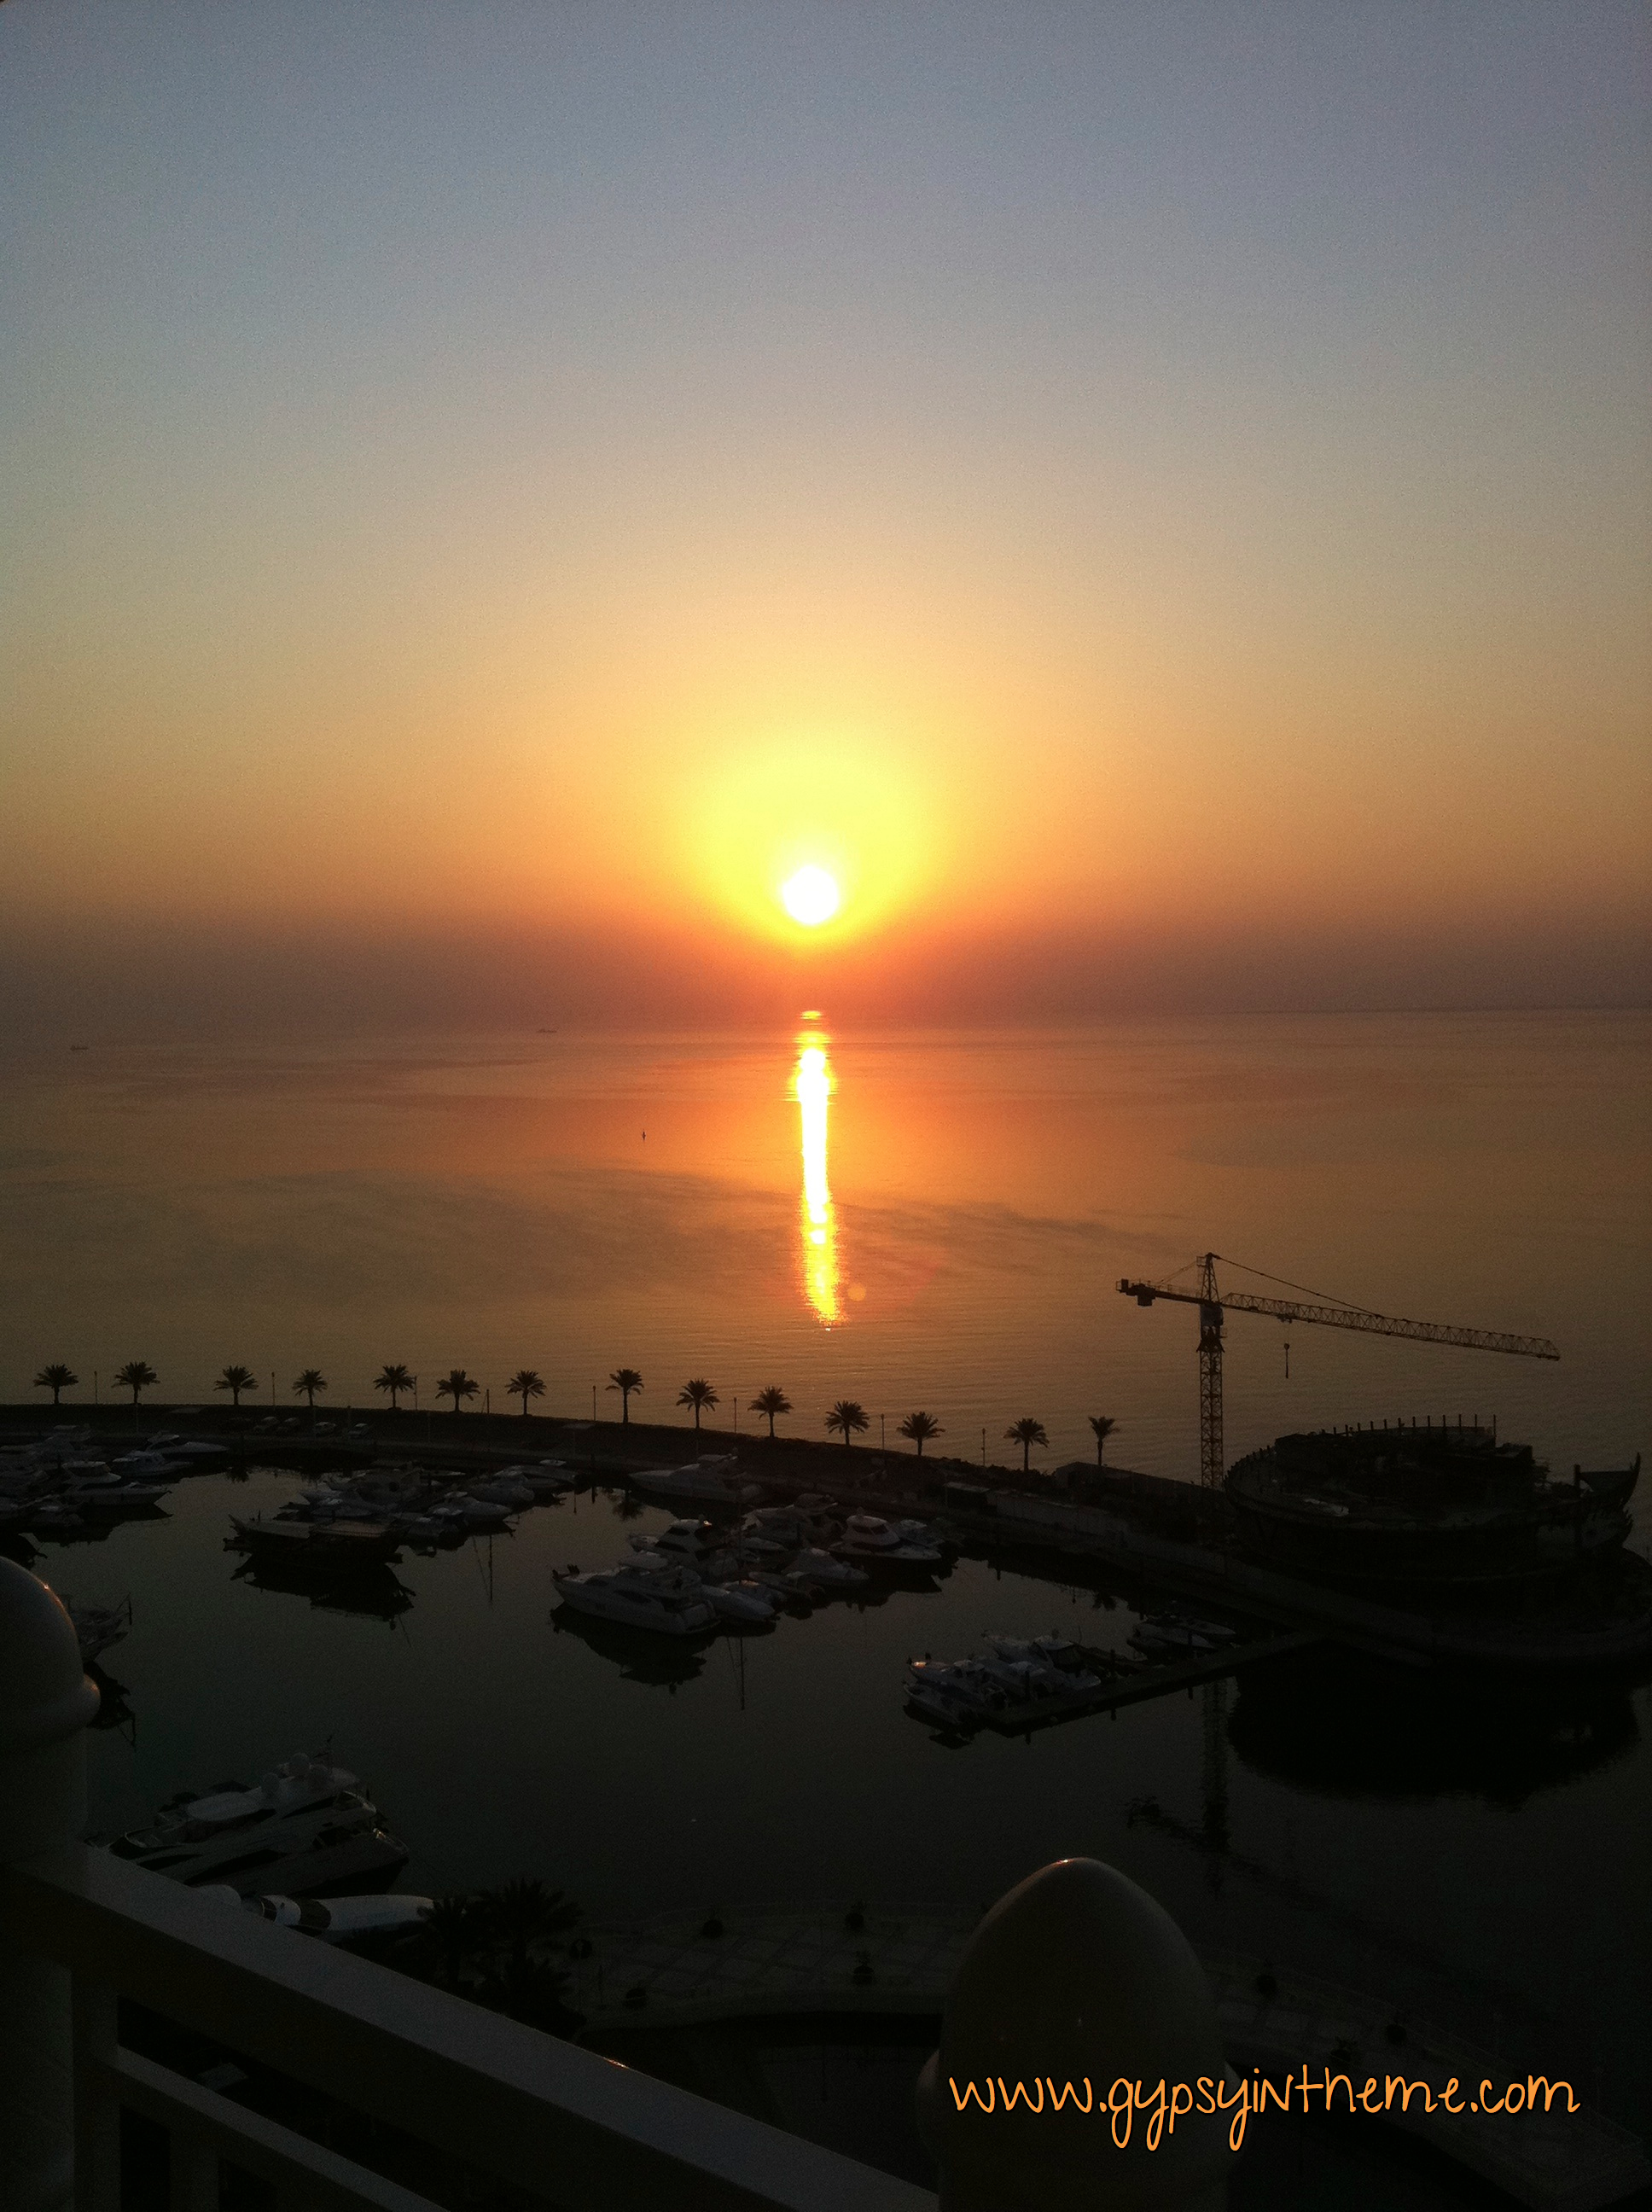 Marina at sunset as seen from the Four Seasons Hotel in Doha.